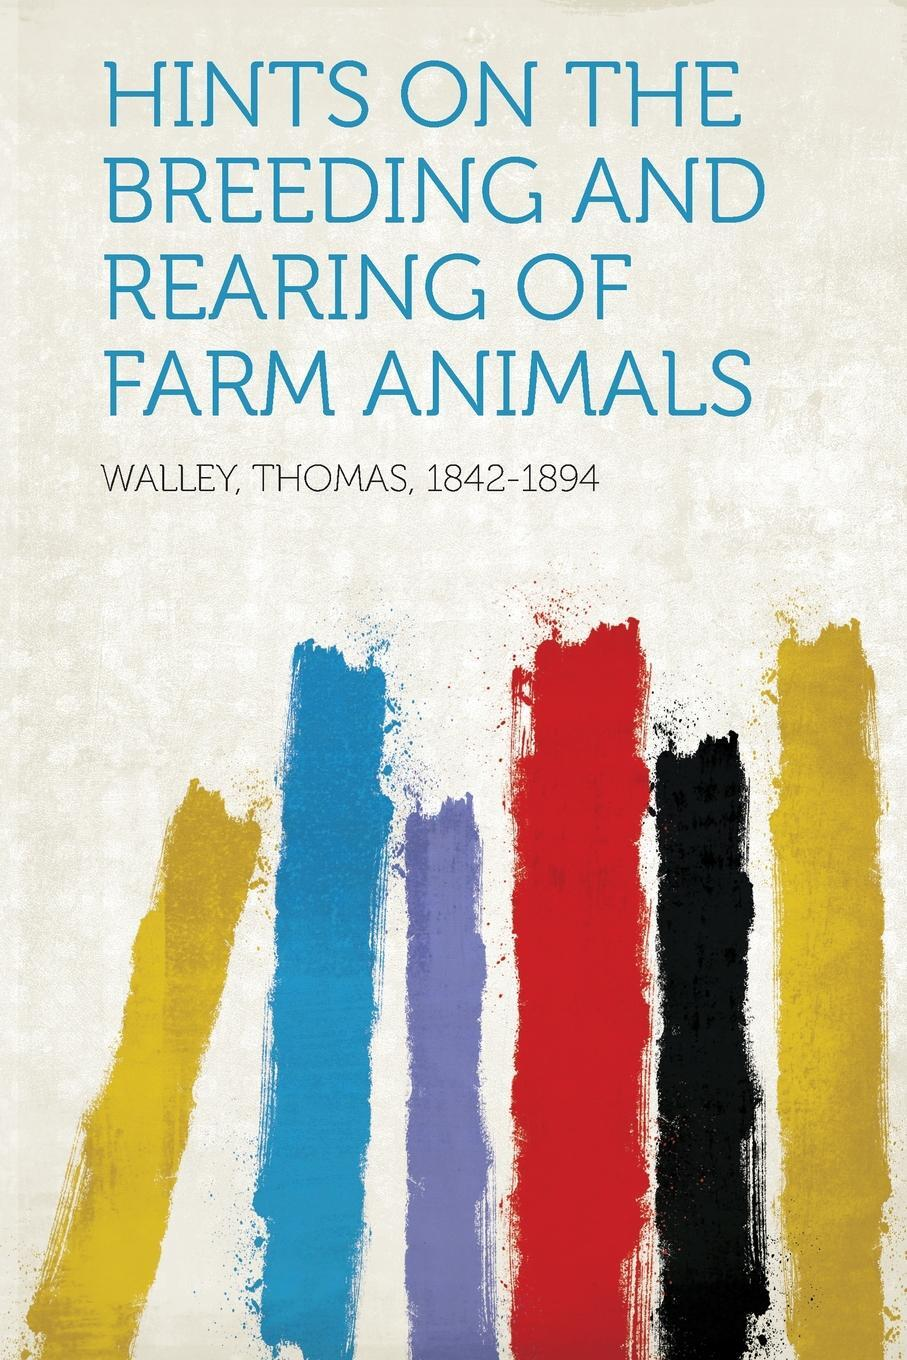 Hints on the Breeding and Rearing of Farm Animals